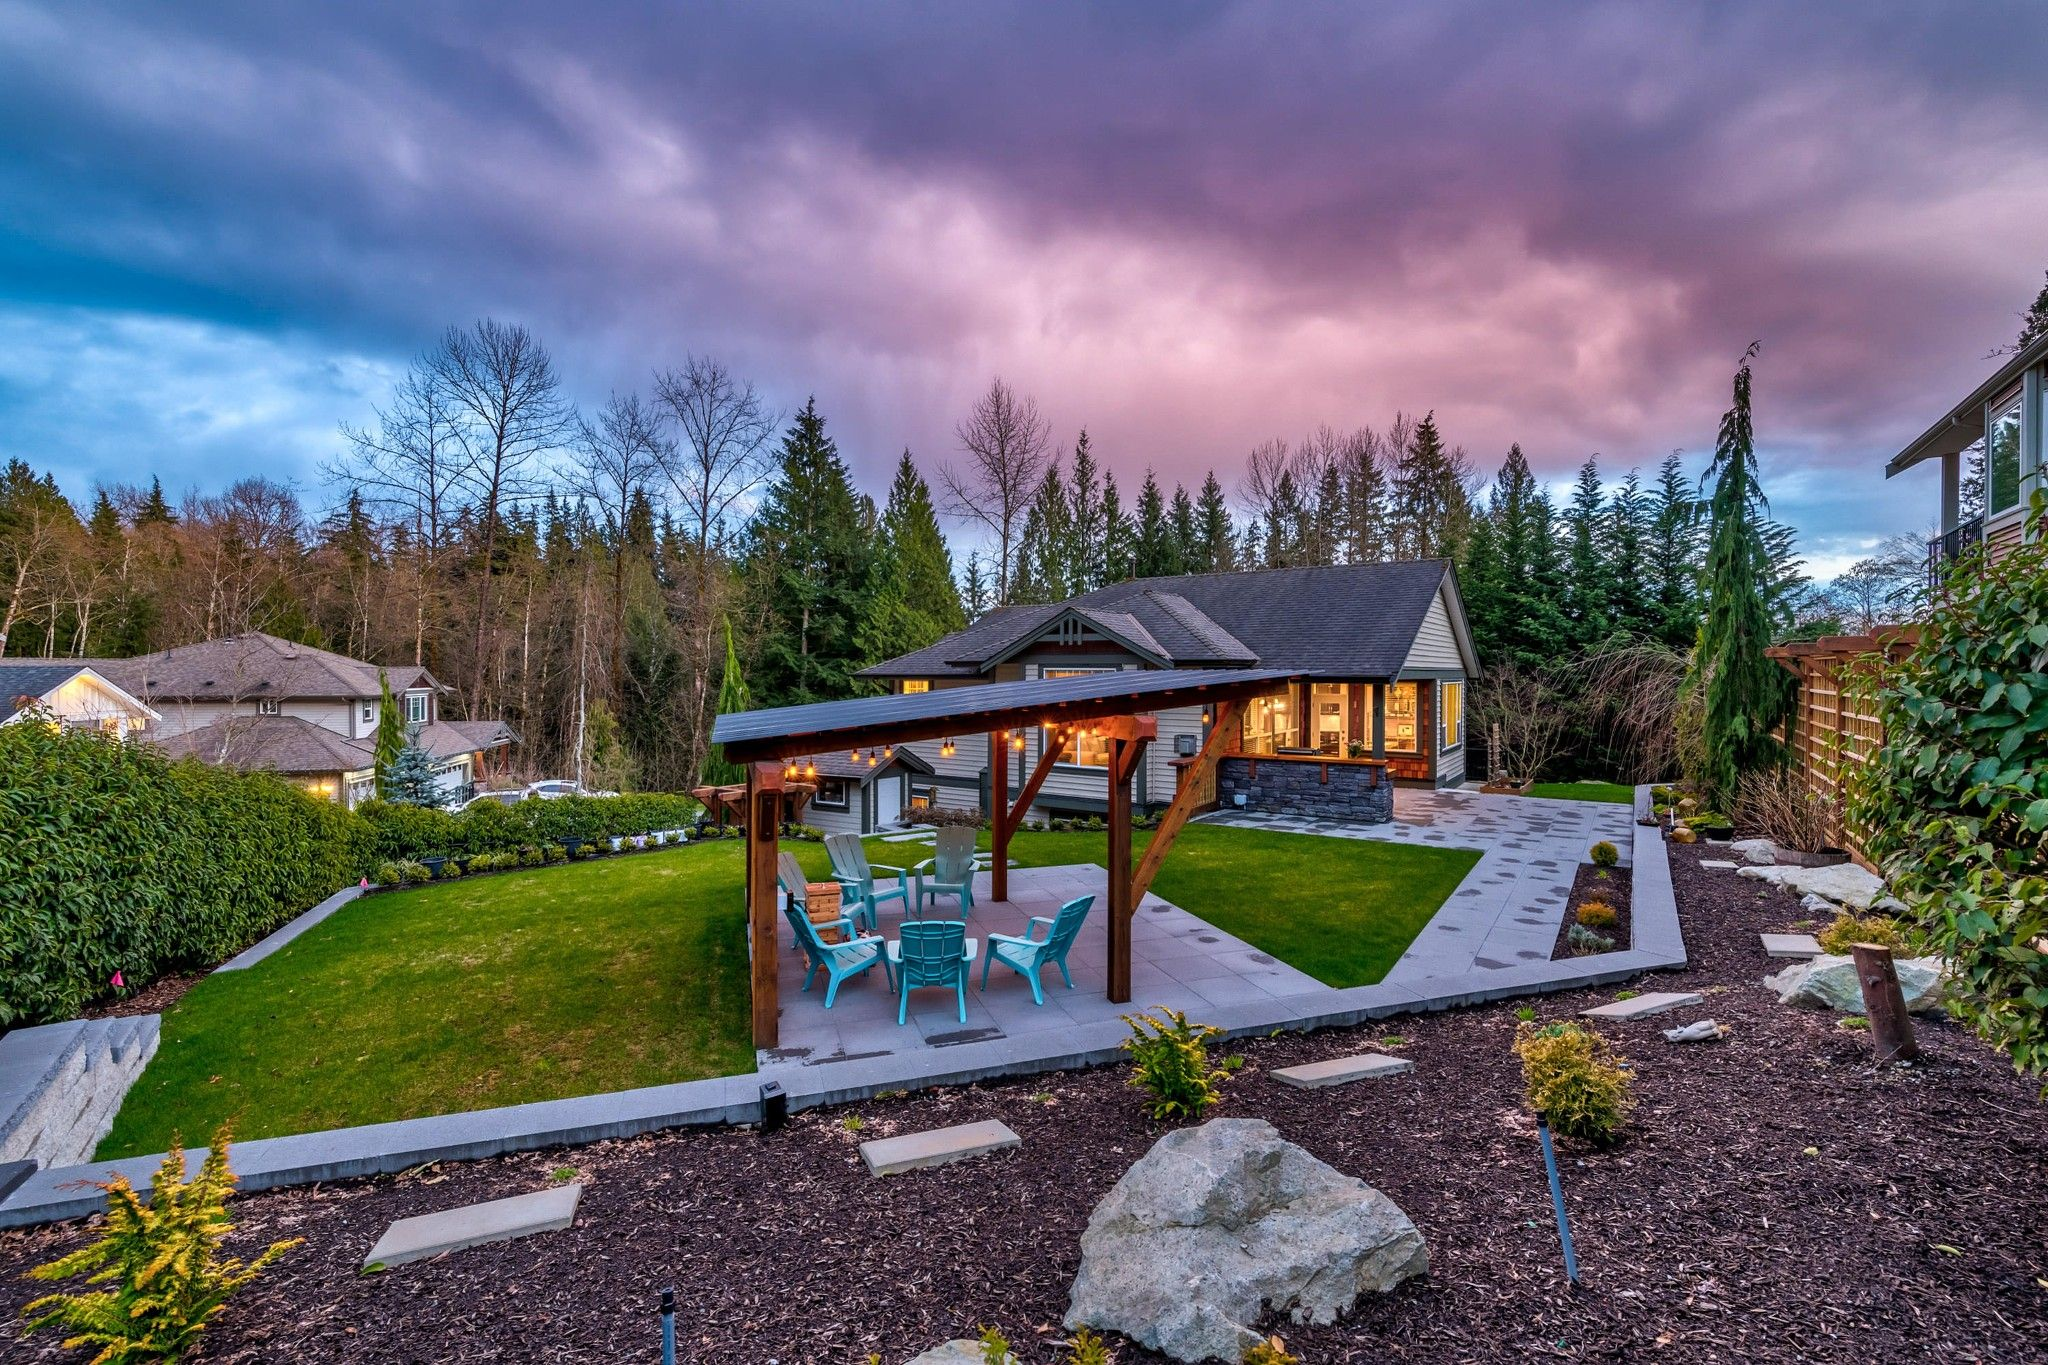 Photo 21: Photos: 16 13210 SHOESMITH CRESCENT in Maple Ridge: Silver Valley House for sale : MLS®# R2448043